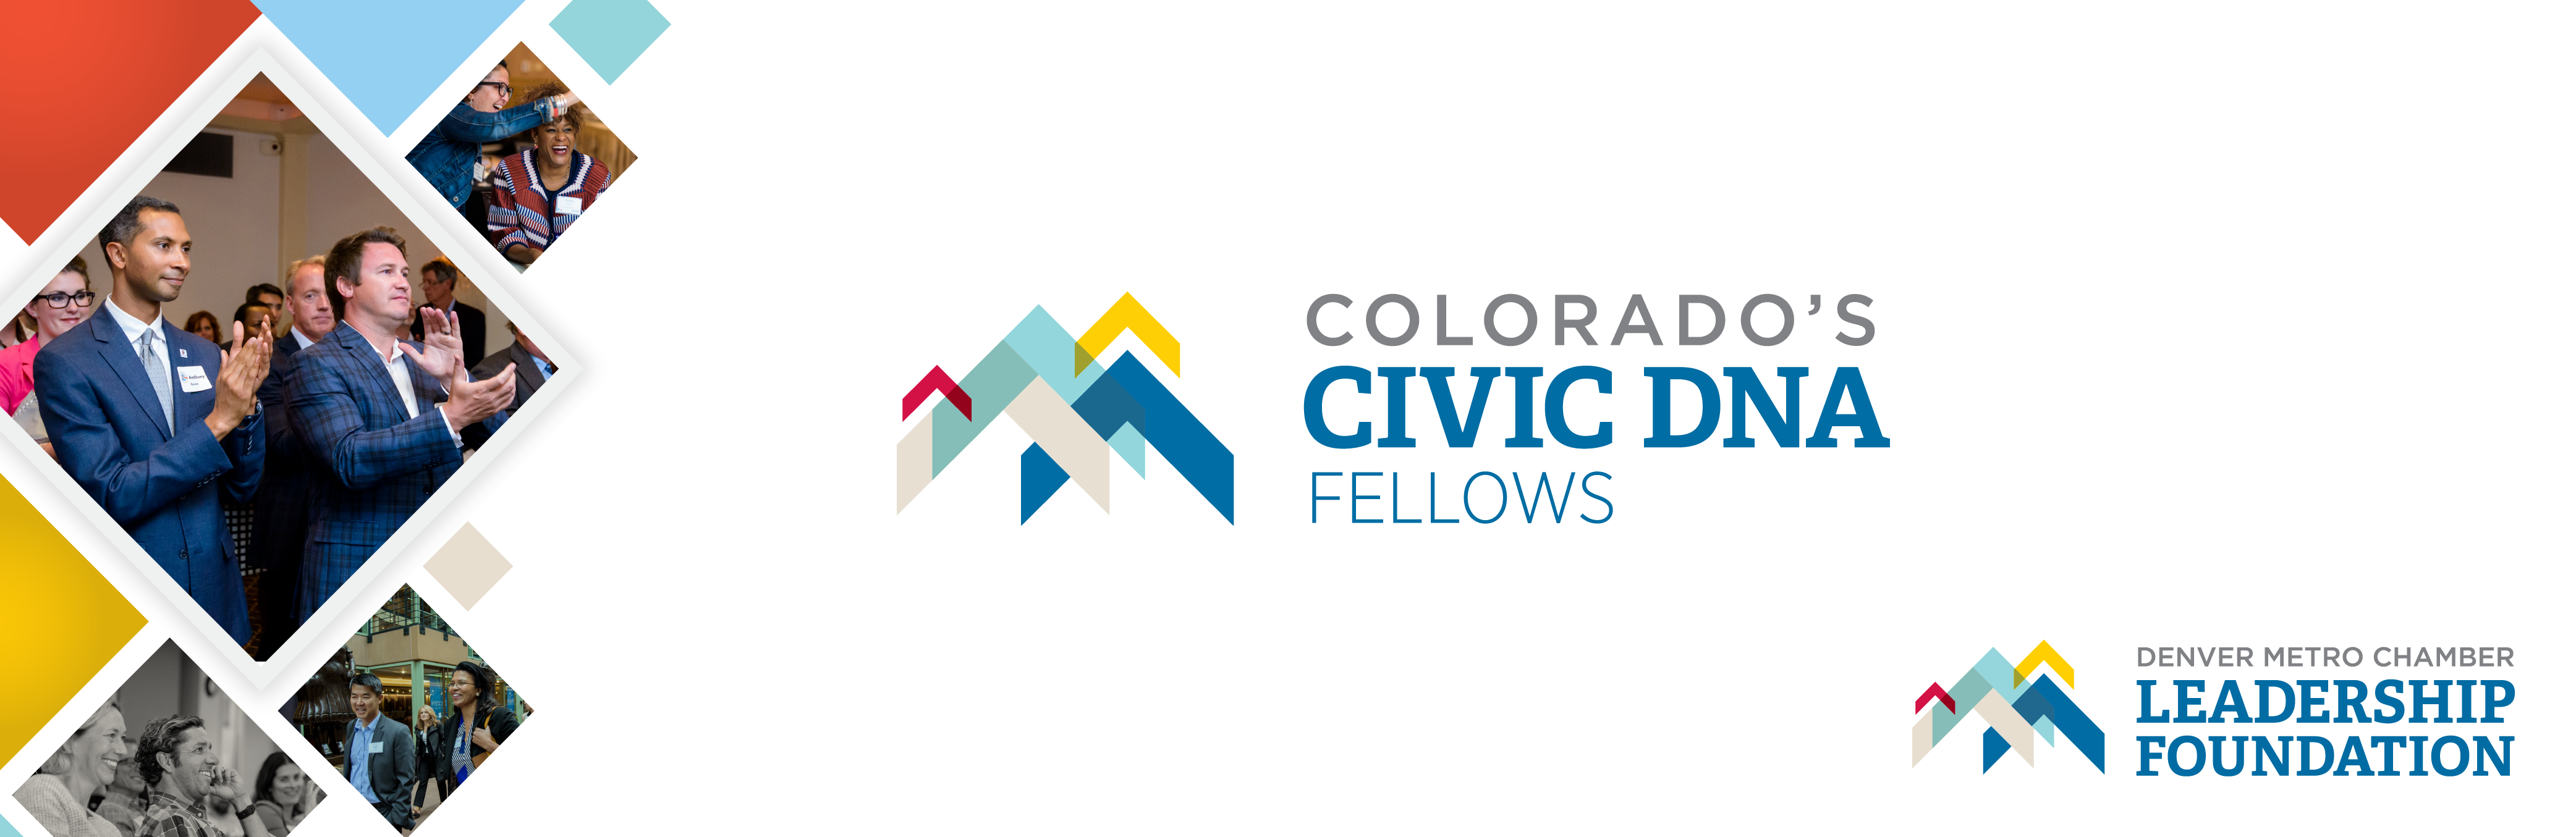 Colorado's Civic DNA Fellows 2020 Application